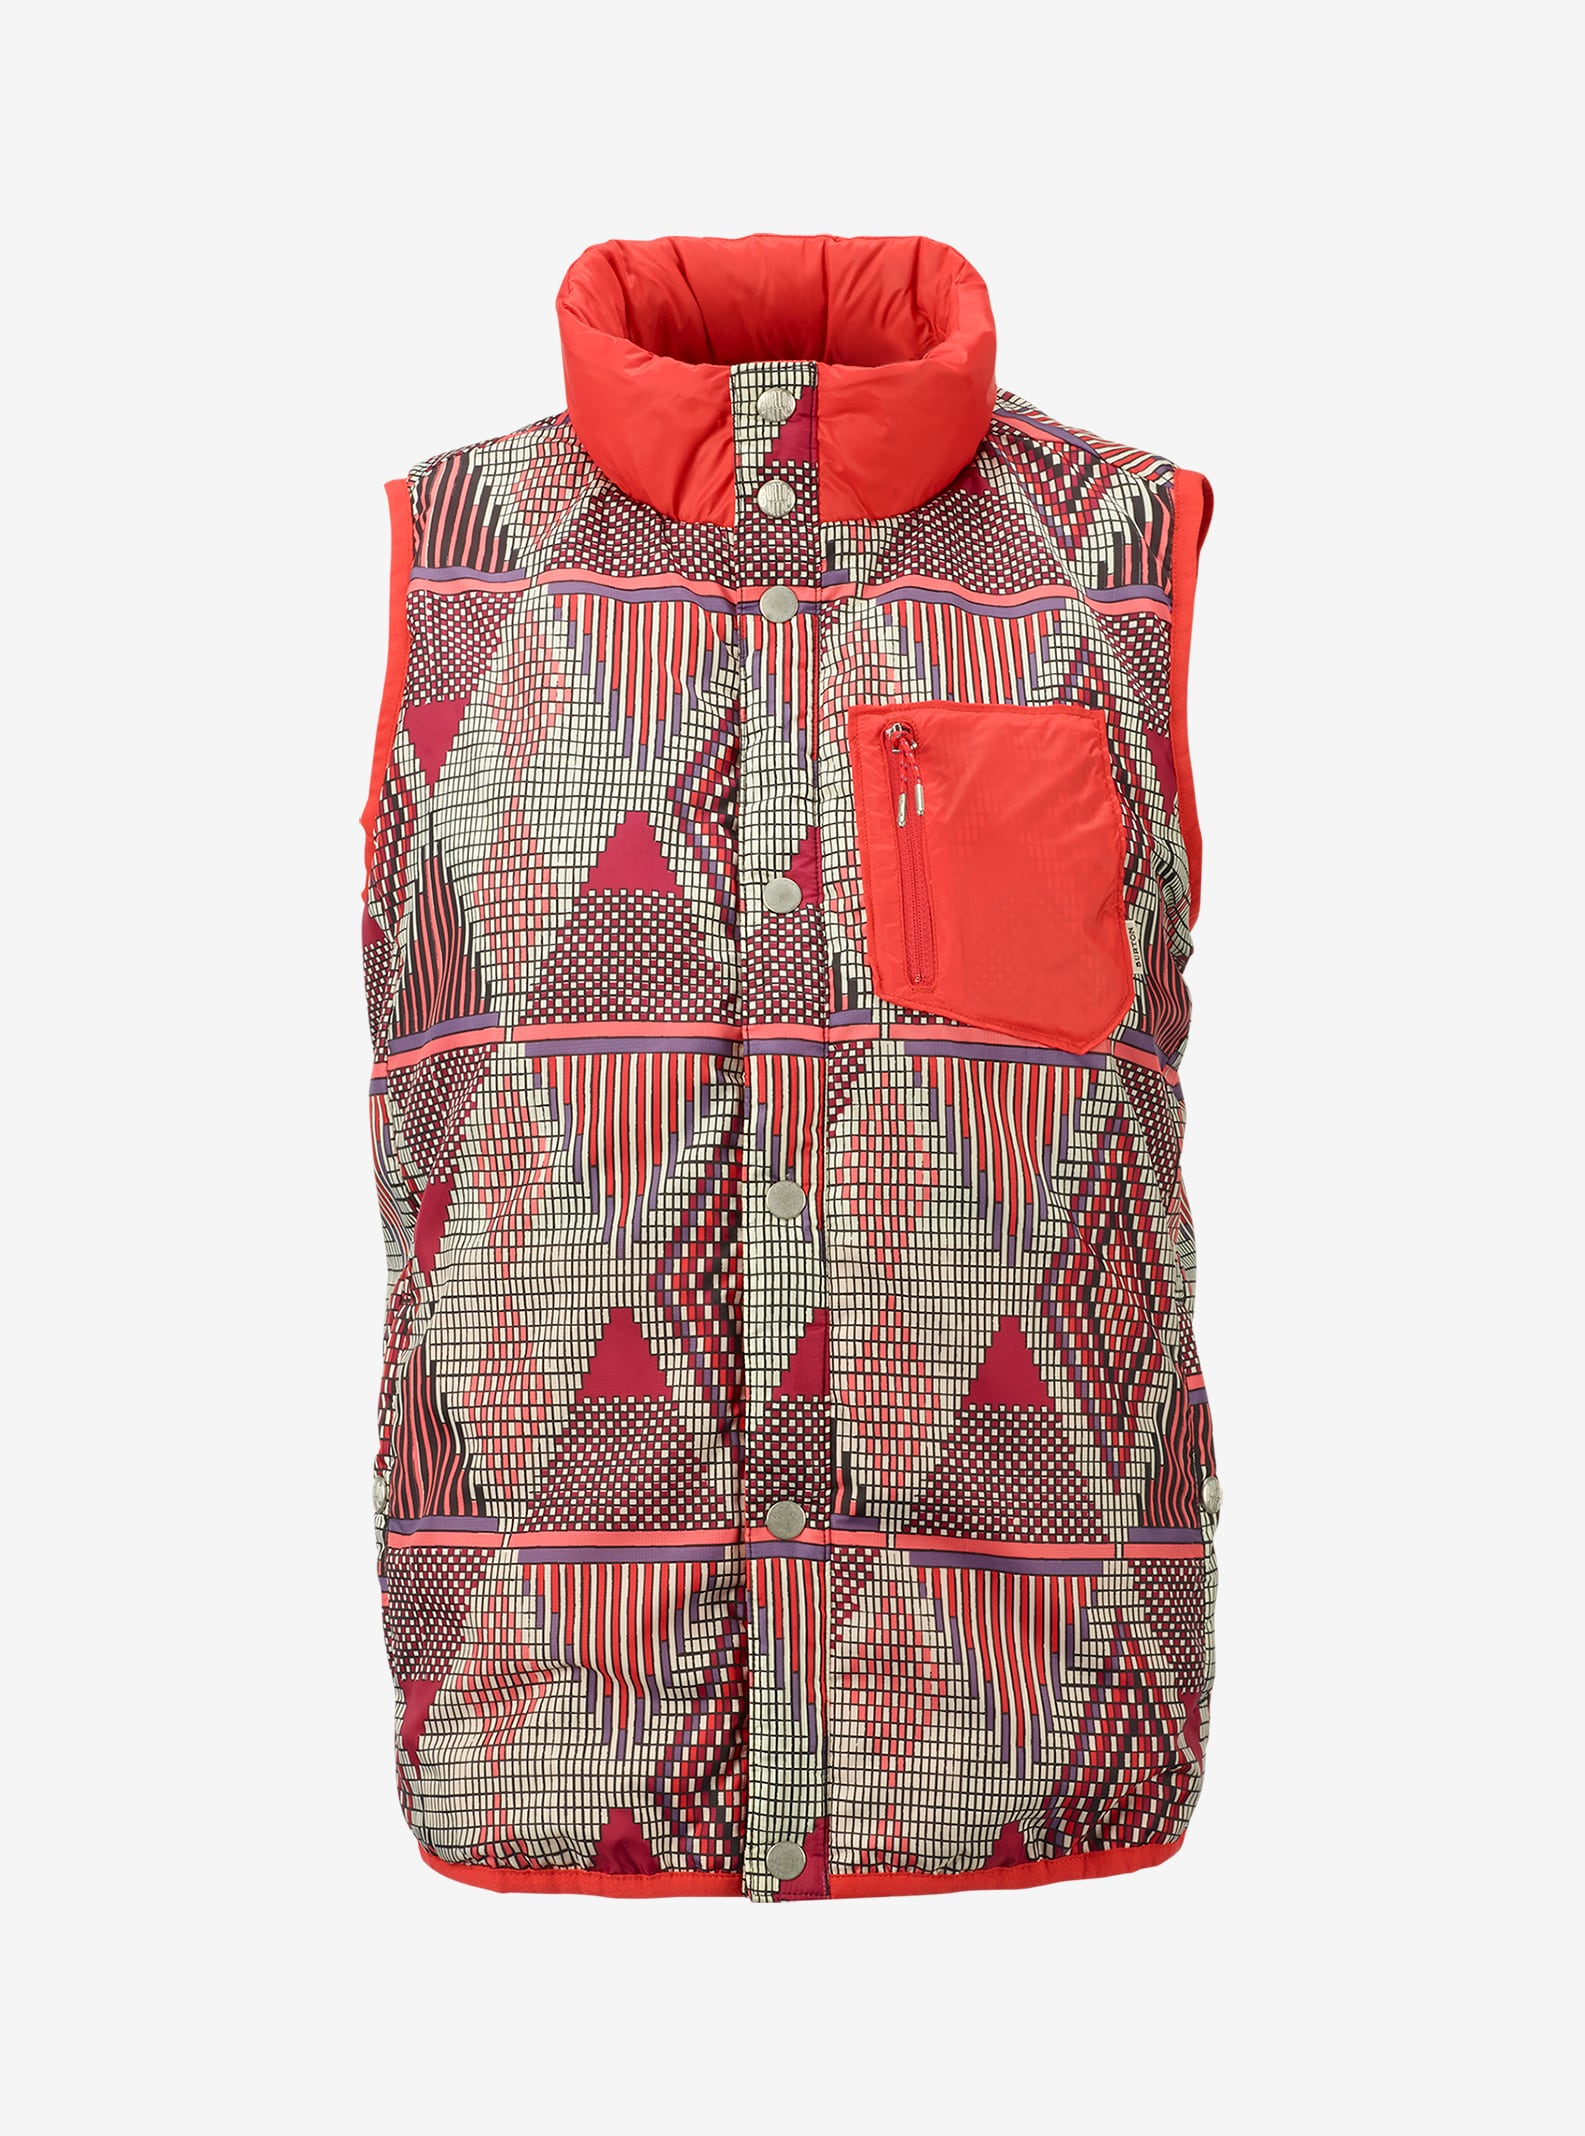 Burton Hella Light Insulator Vest shown in Anemone De Geo / Coral